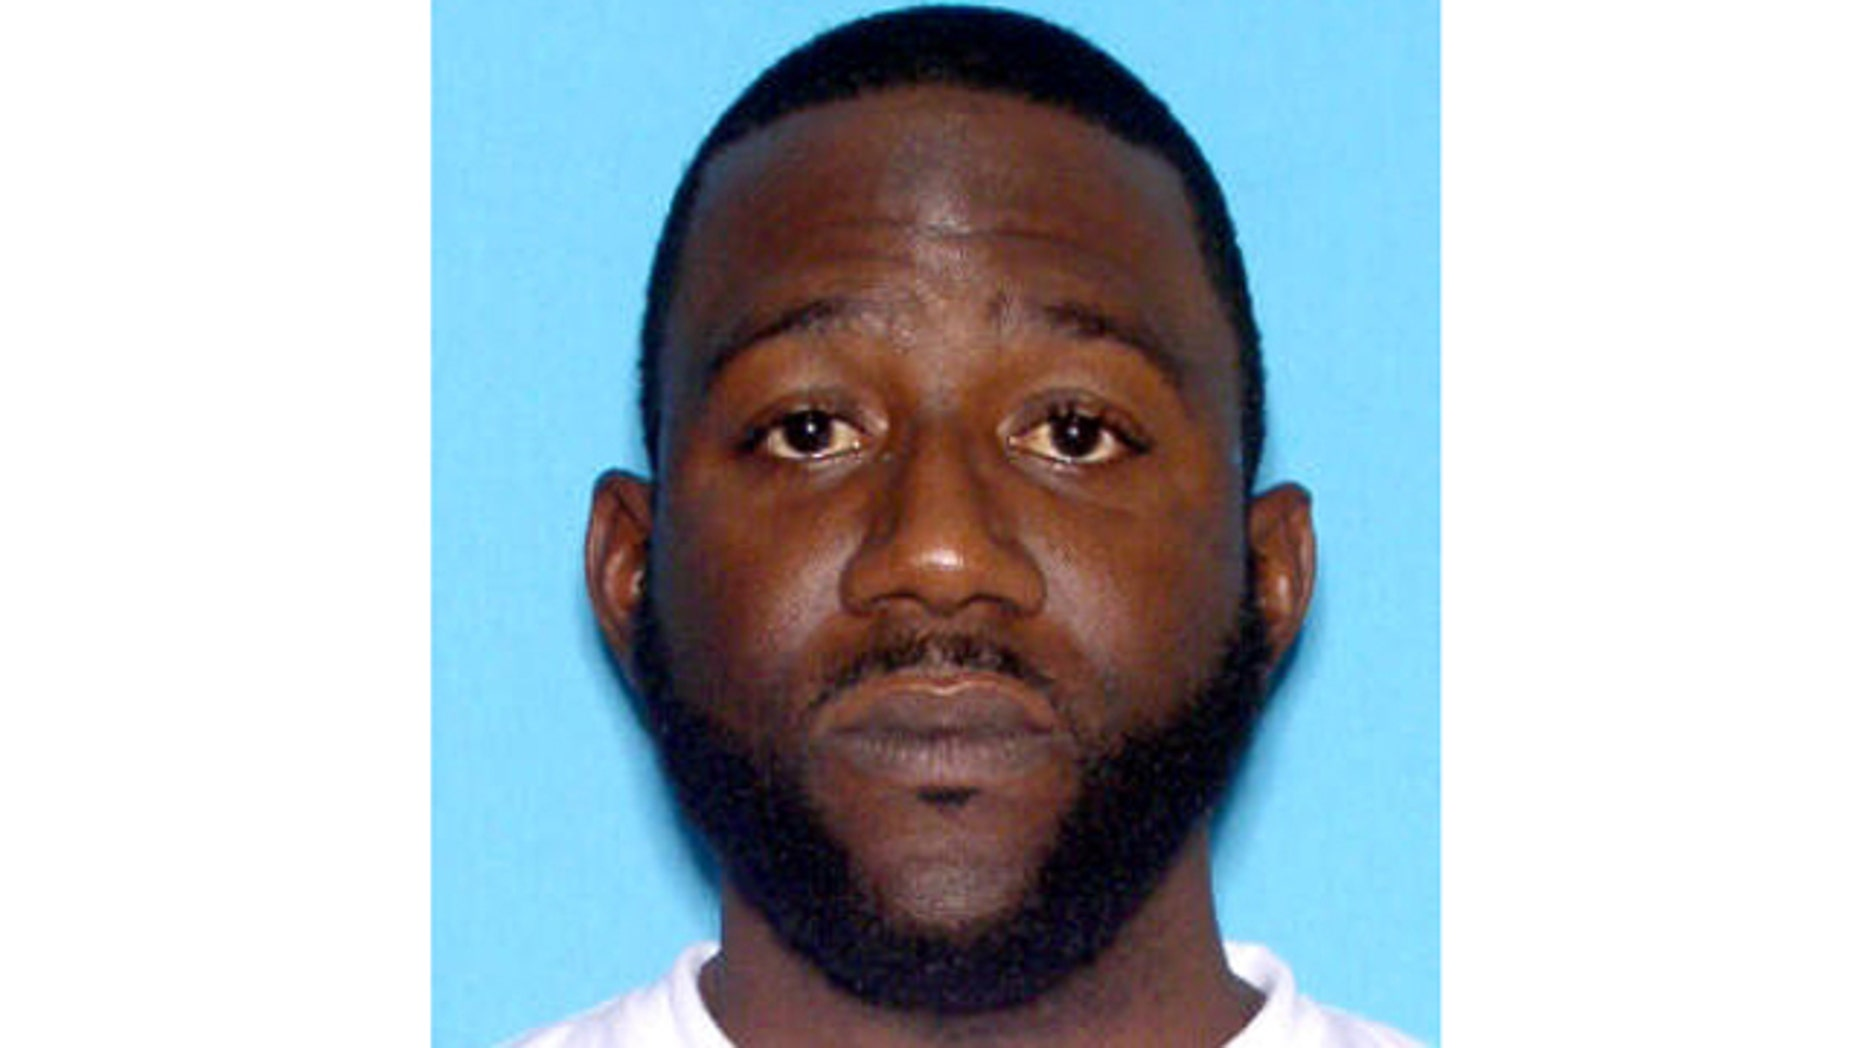 In this undated photo released by the FBI, Nathaniel Moss is shown.